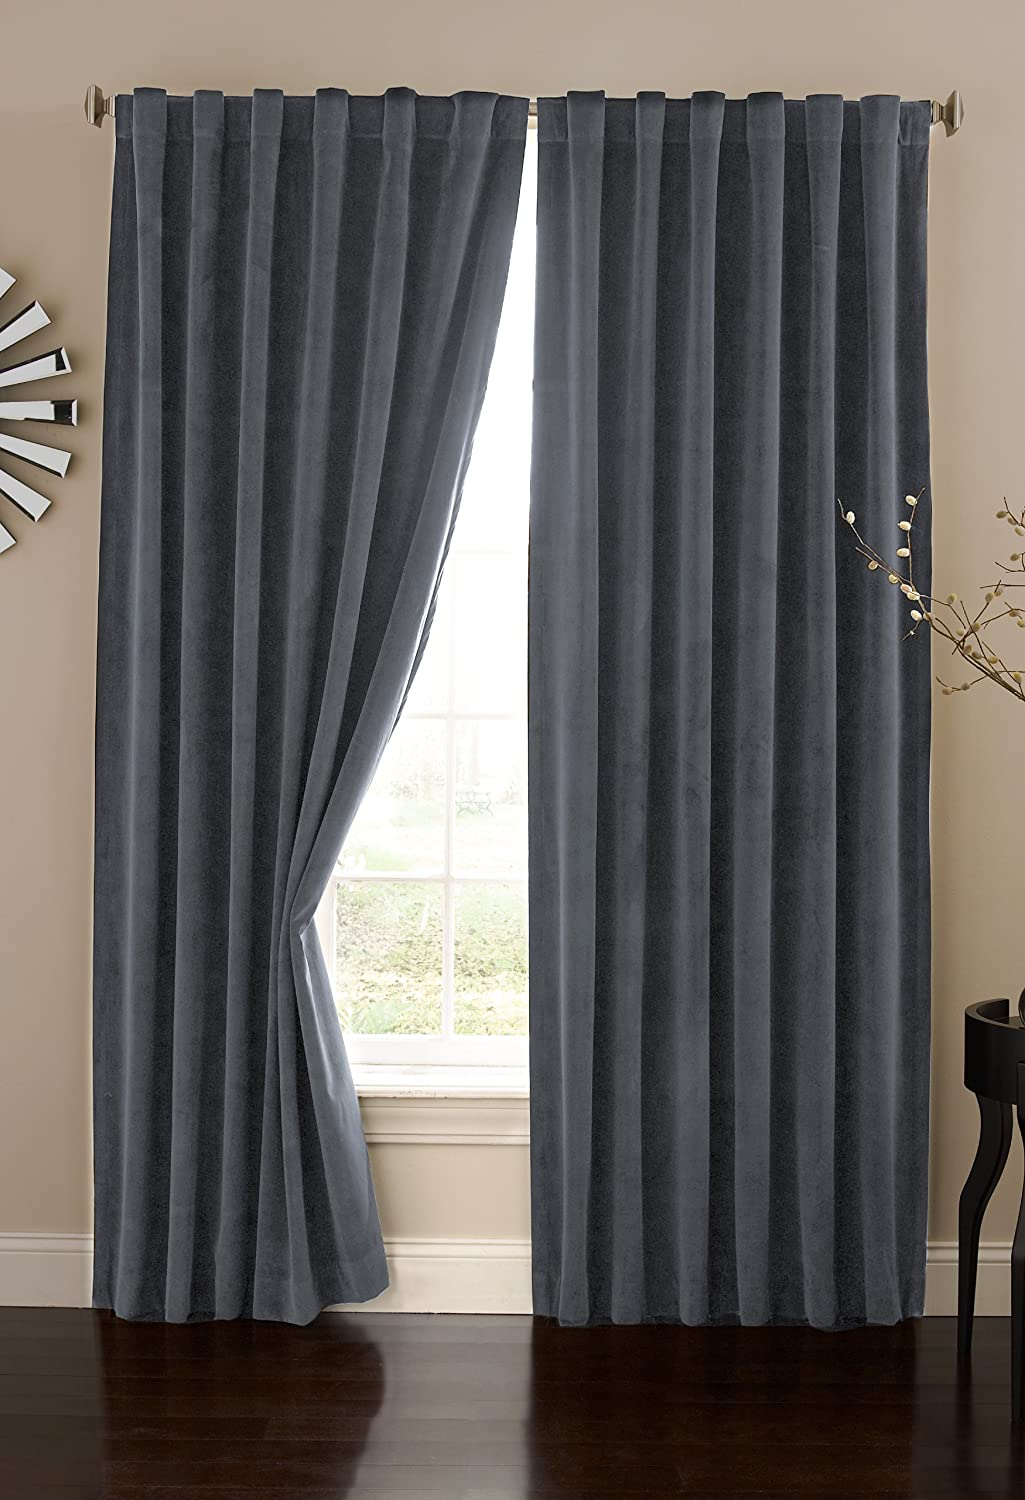 eulanguages of curtain inch lovely white sheer com curtains window best